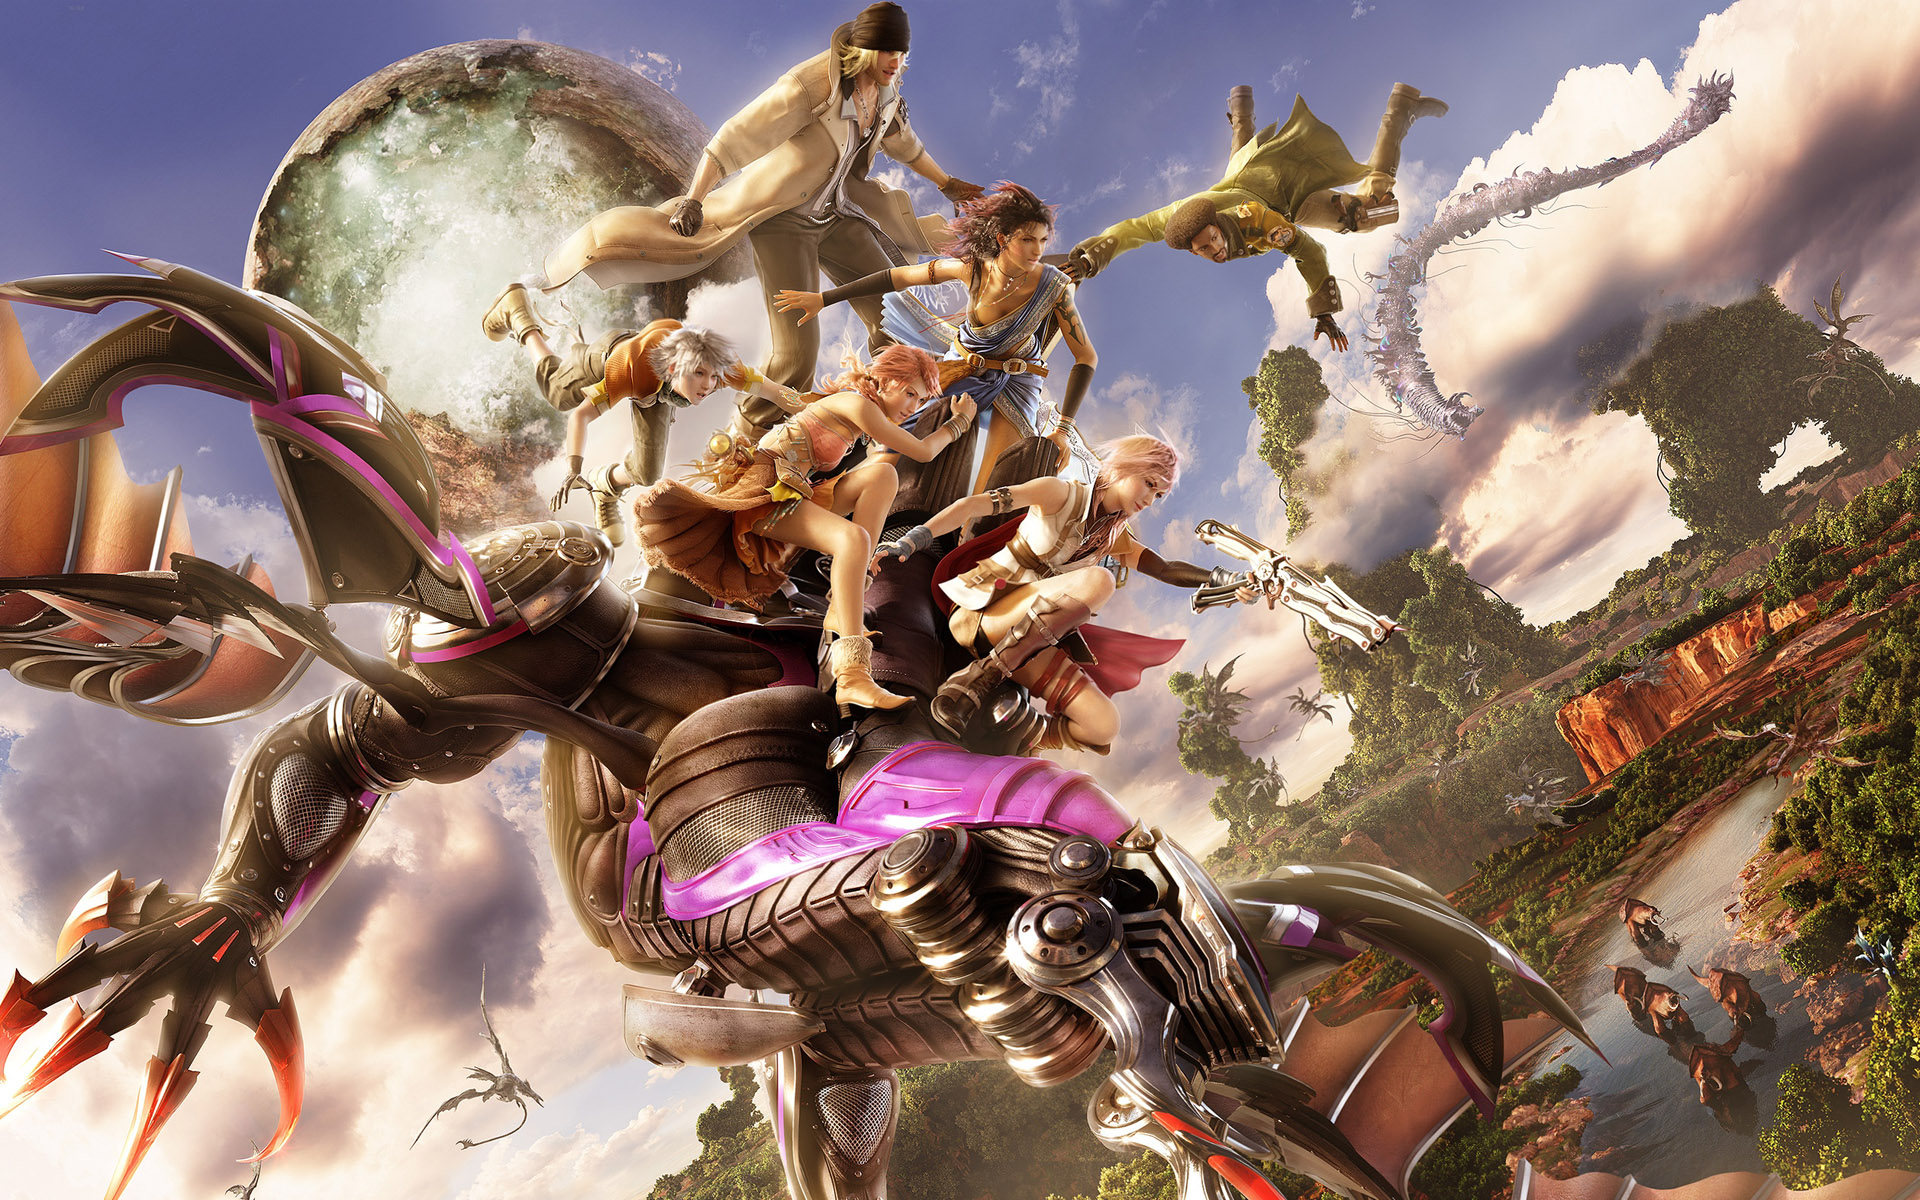 Free Download Final Fantasy Ps3 Xbox 360 Wallpapers And Images